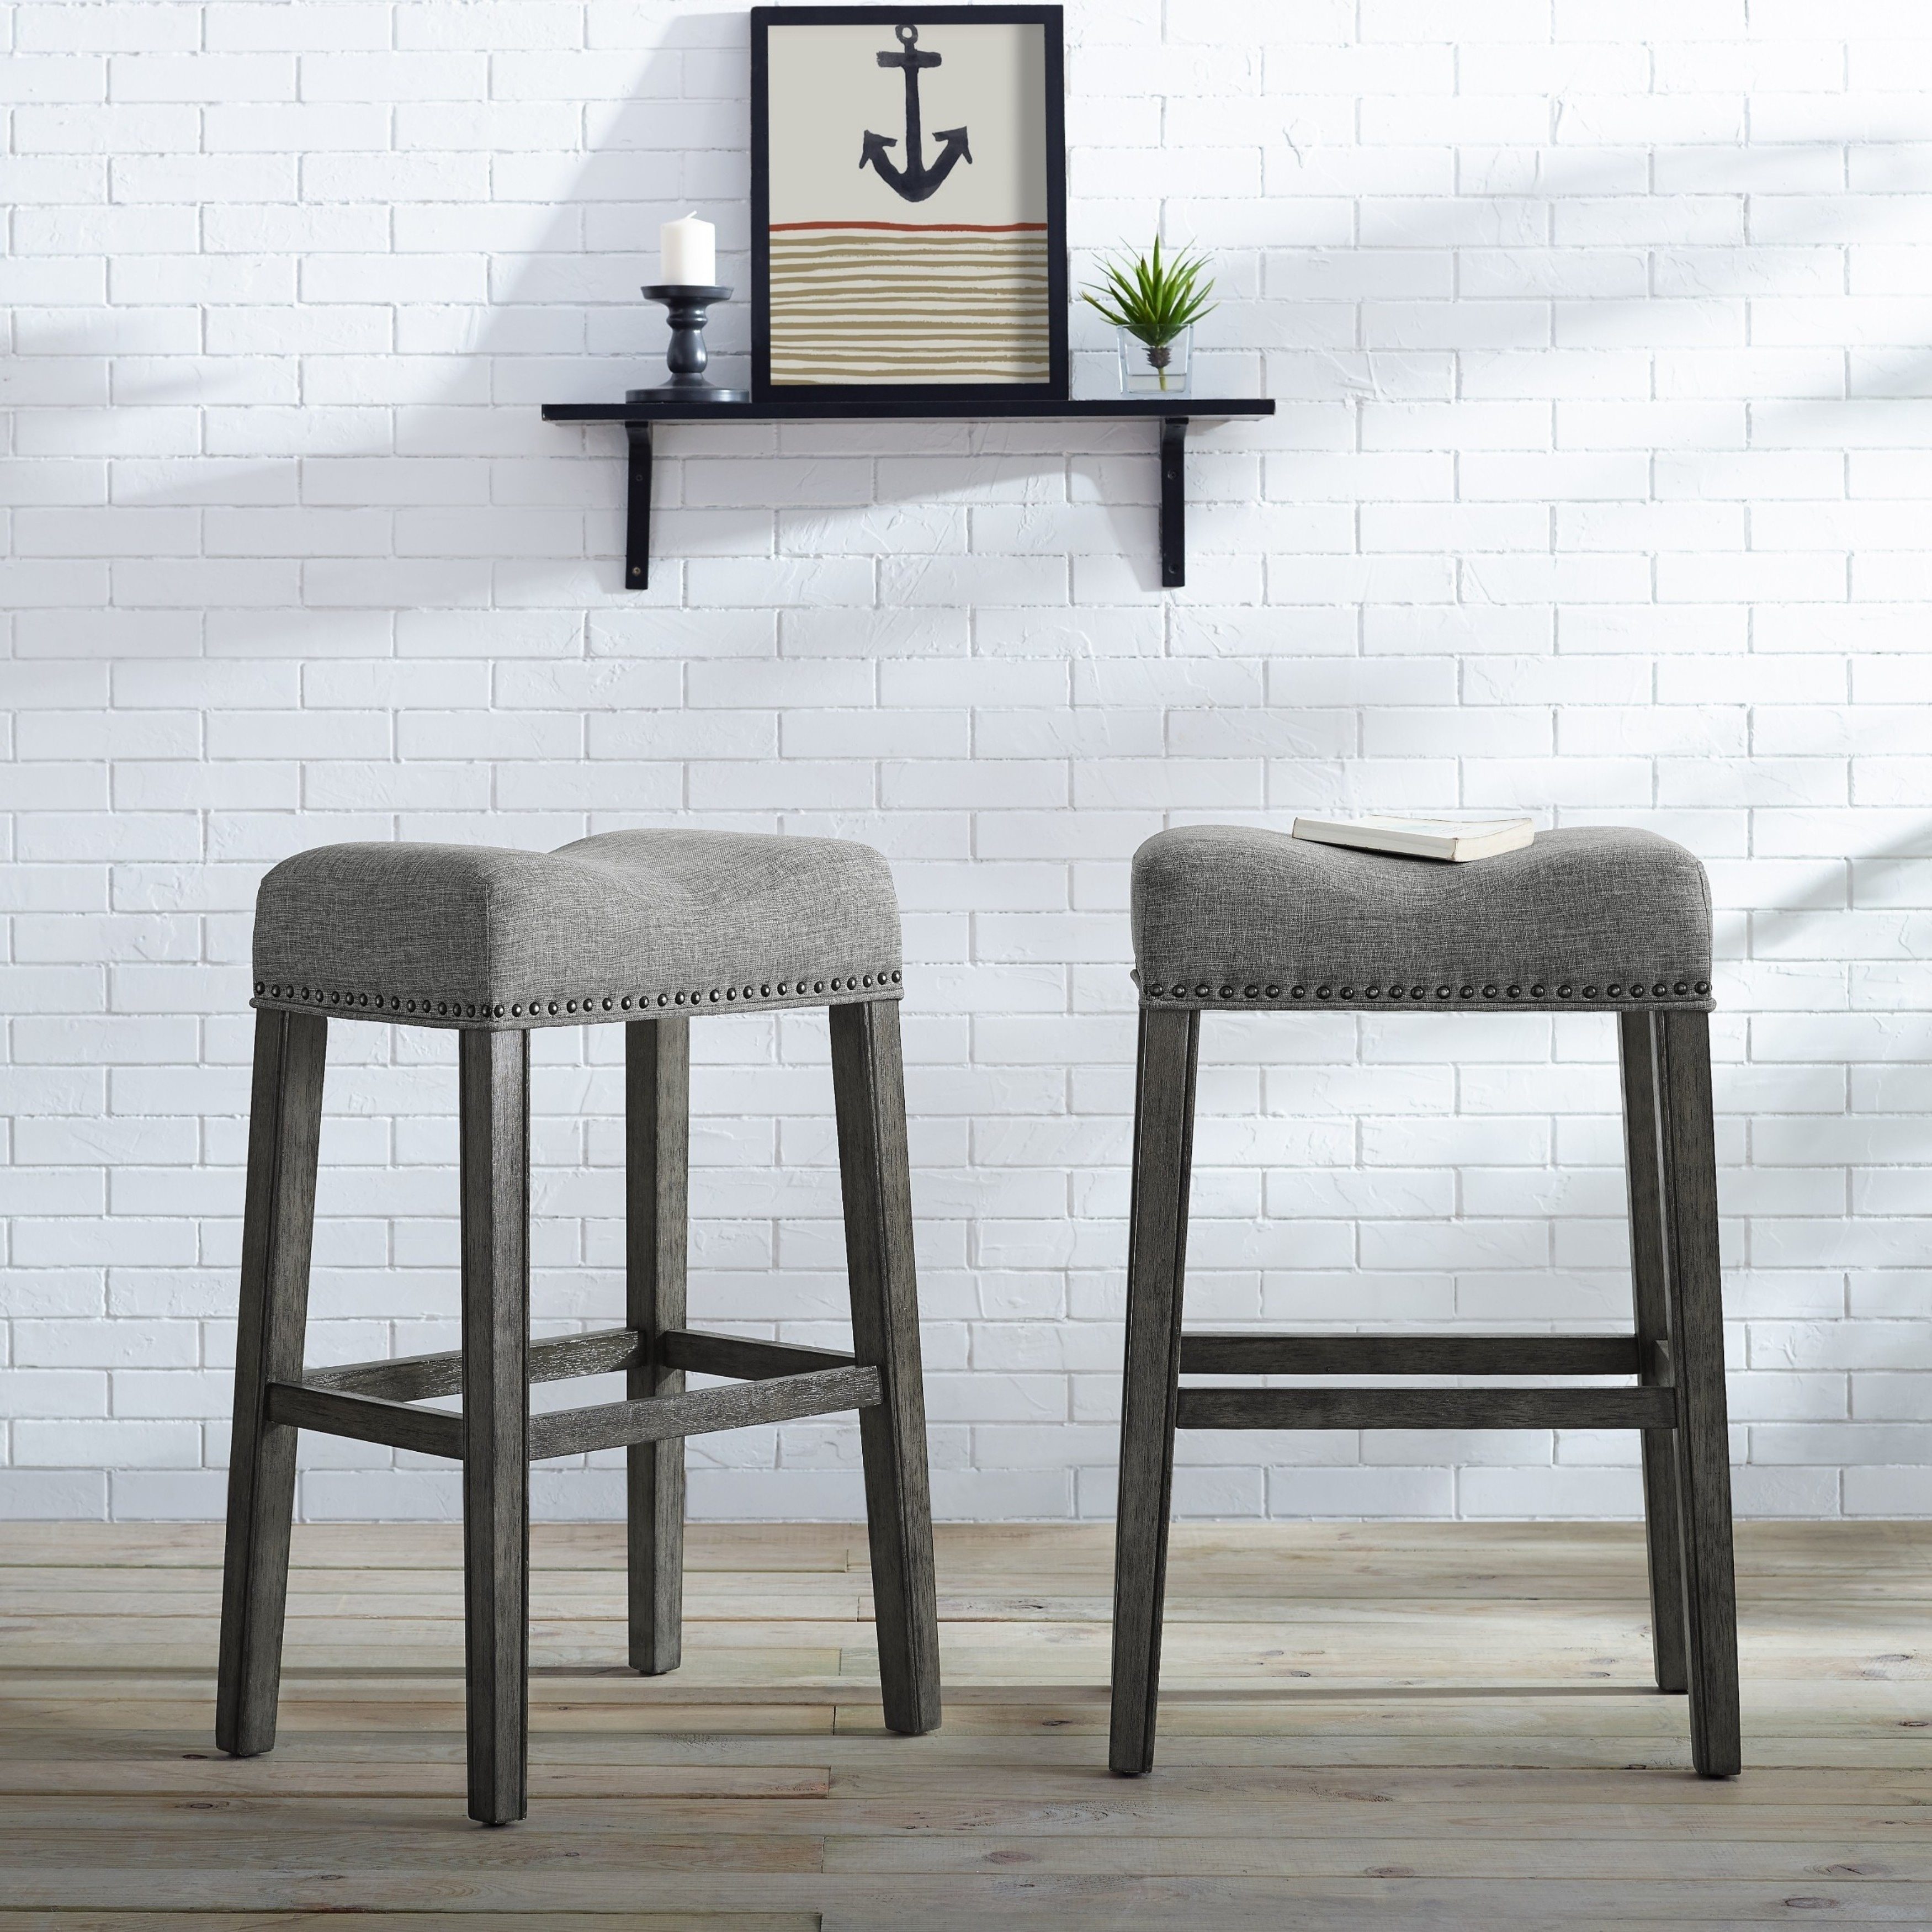 The Gray Barn Overlook Upholstered Backless Bar Stool Set Of 2 On Sale Overstock 22730699